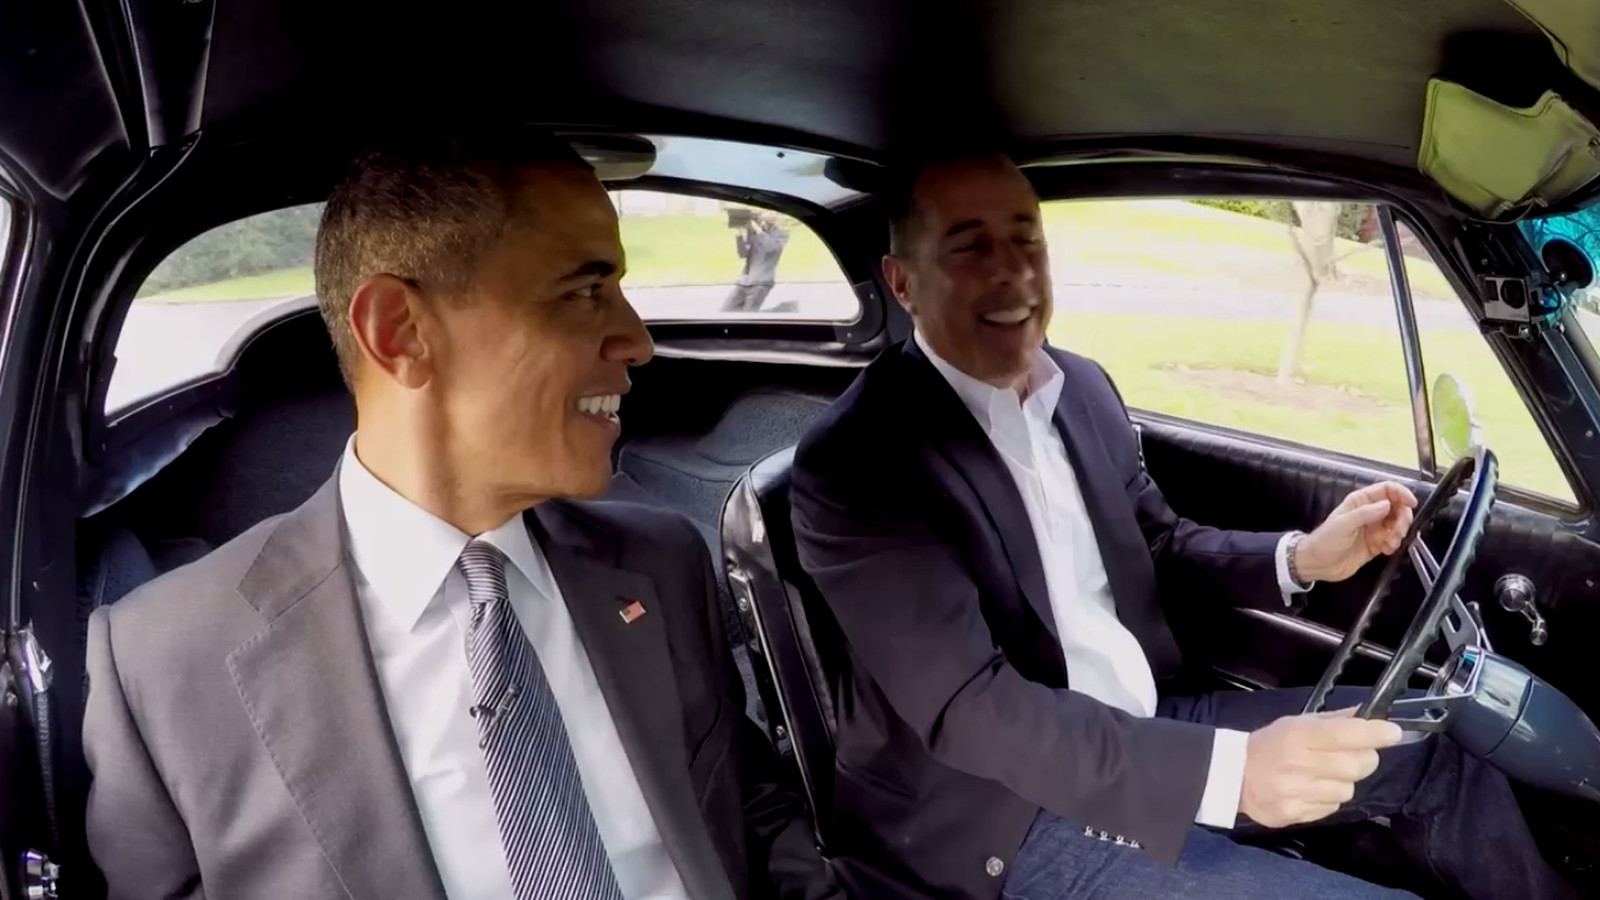 Comedians Driving Cars Getting Coffee Obama